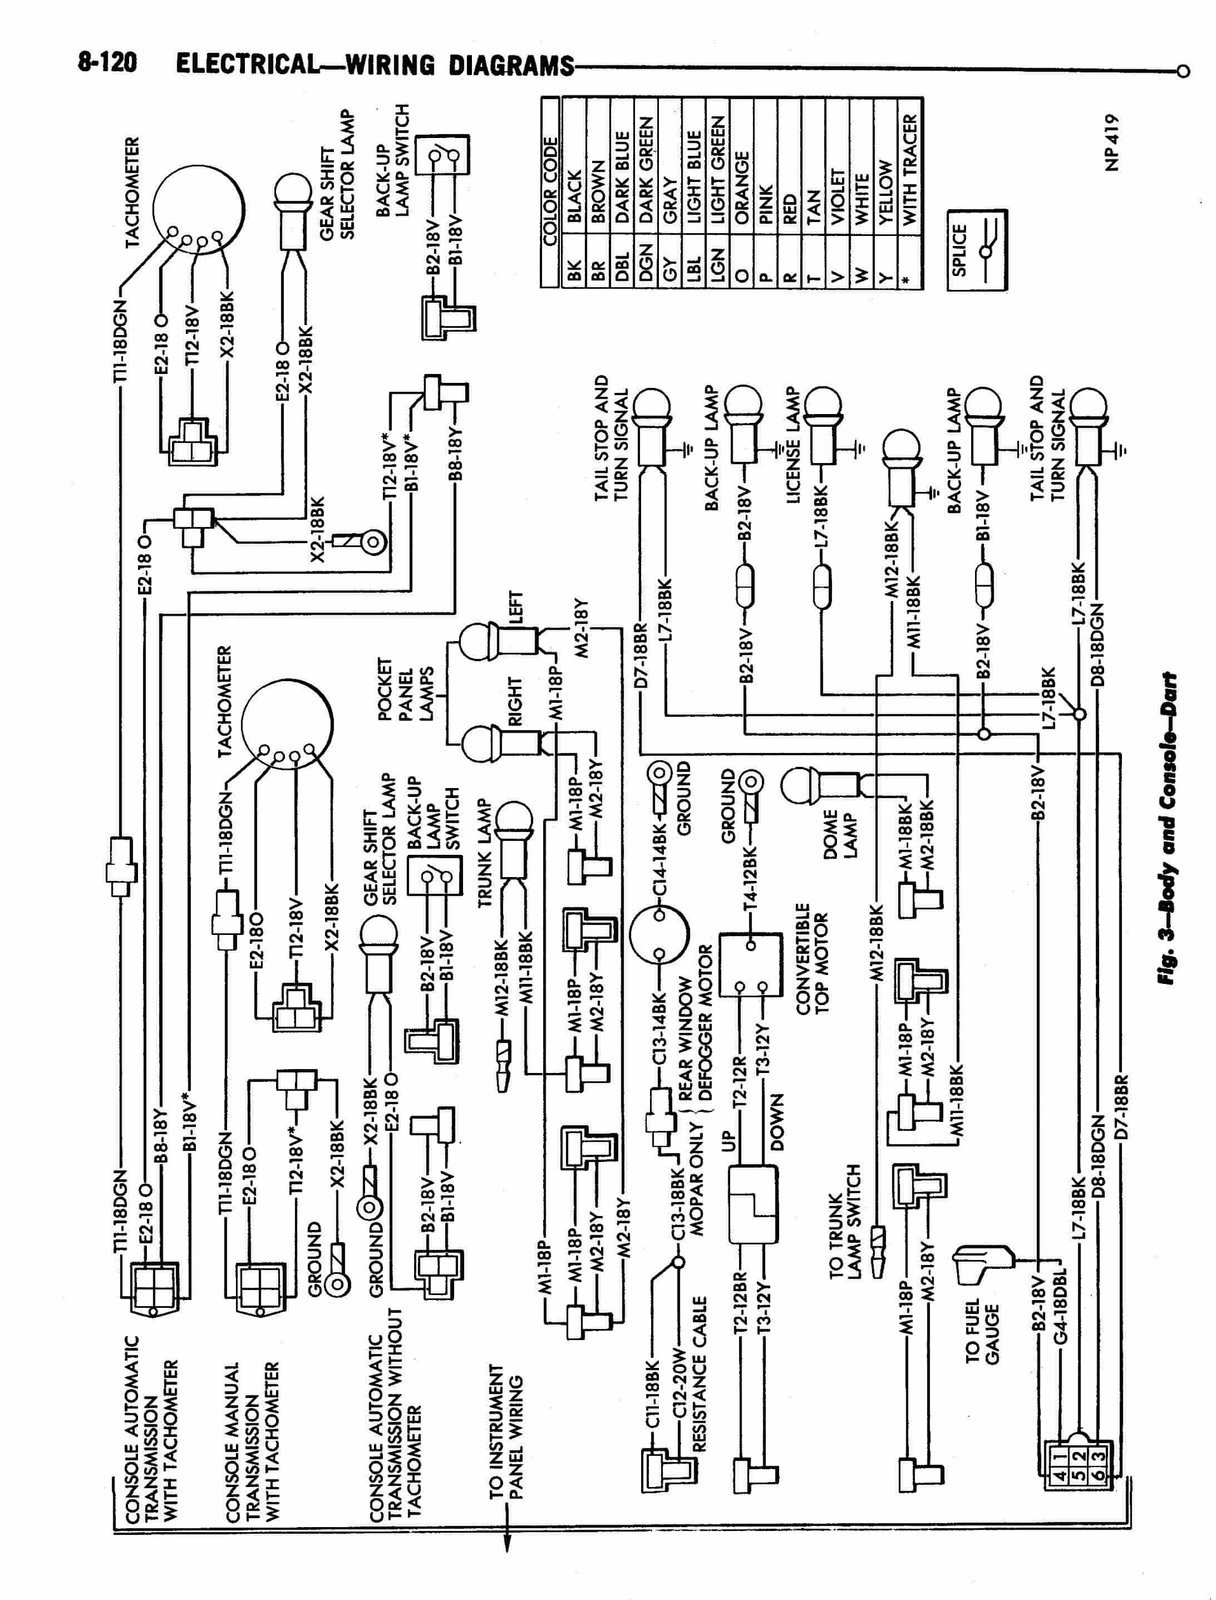 1967 dart wiring diagrams | for a bodies only mopar forum 66 mopar electric wire diagram